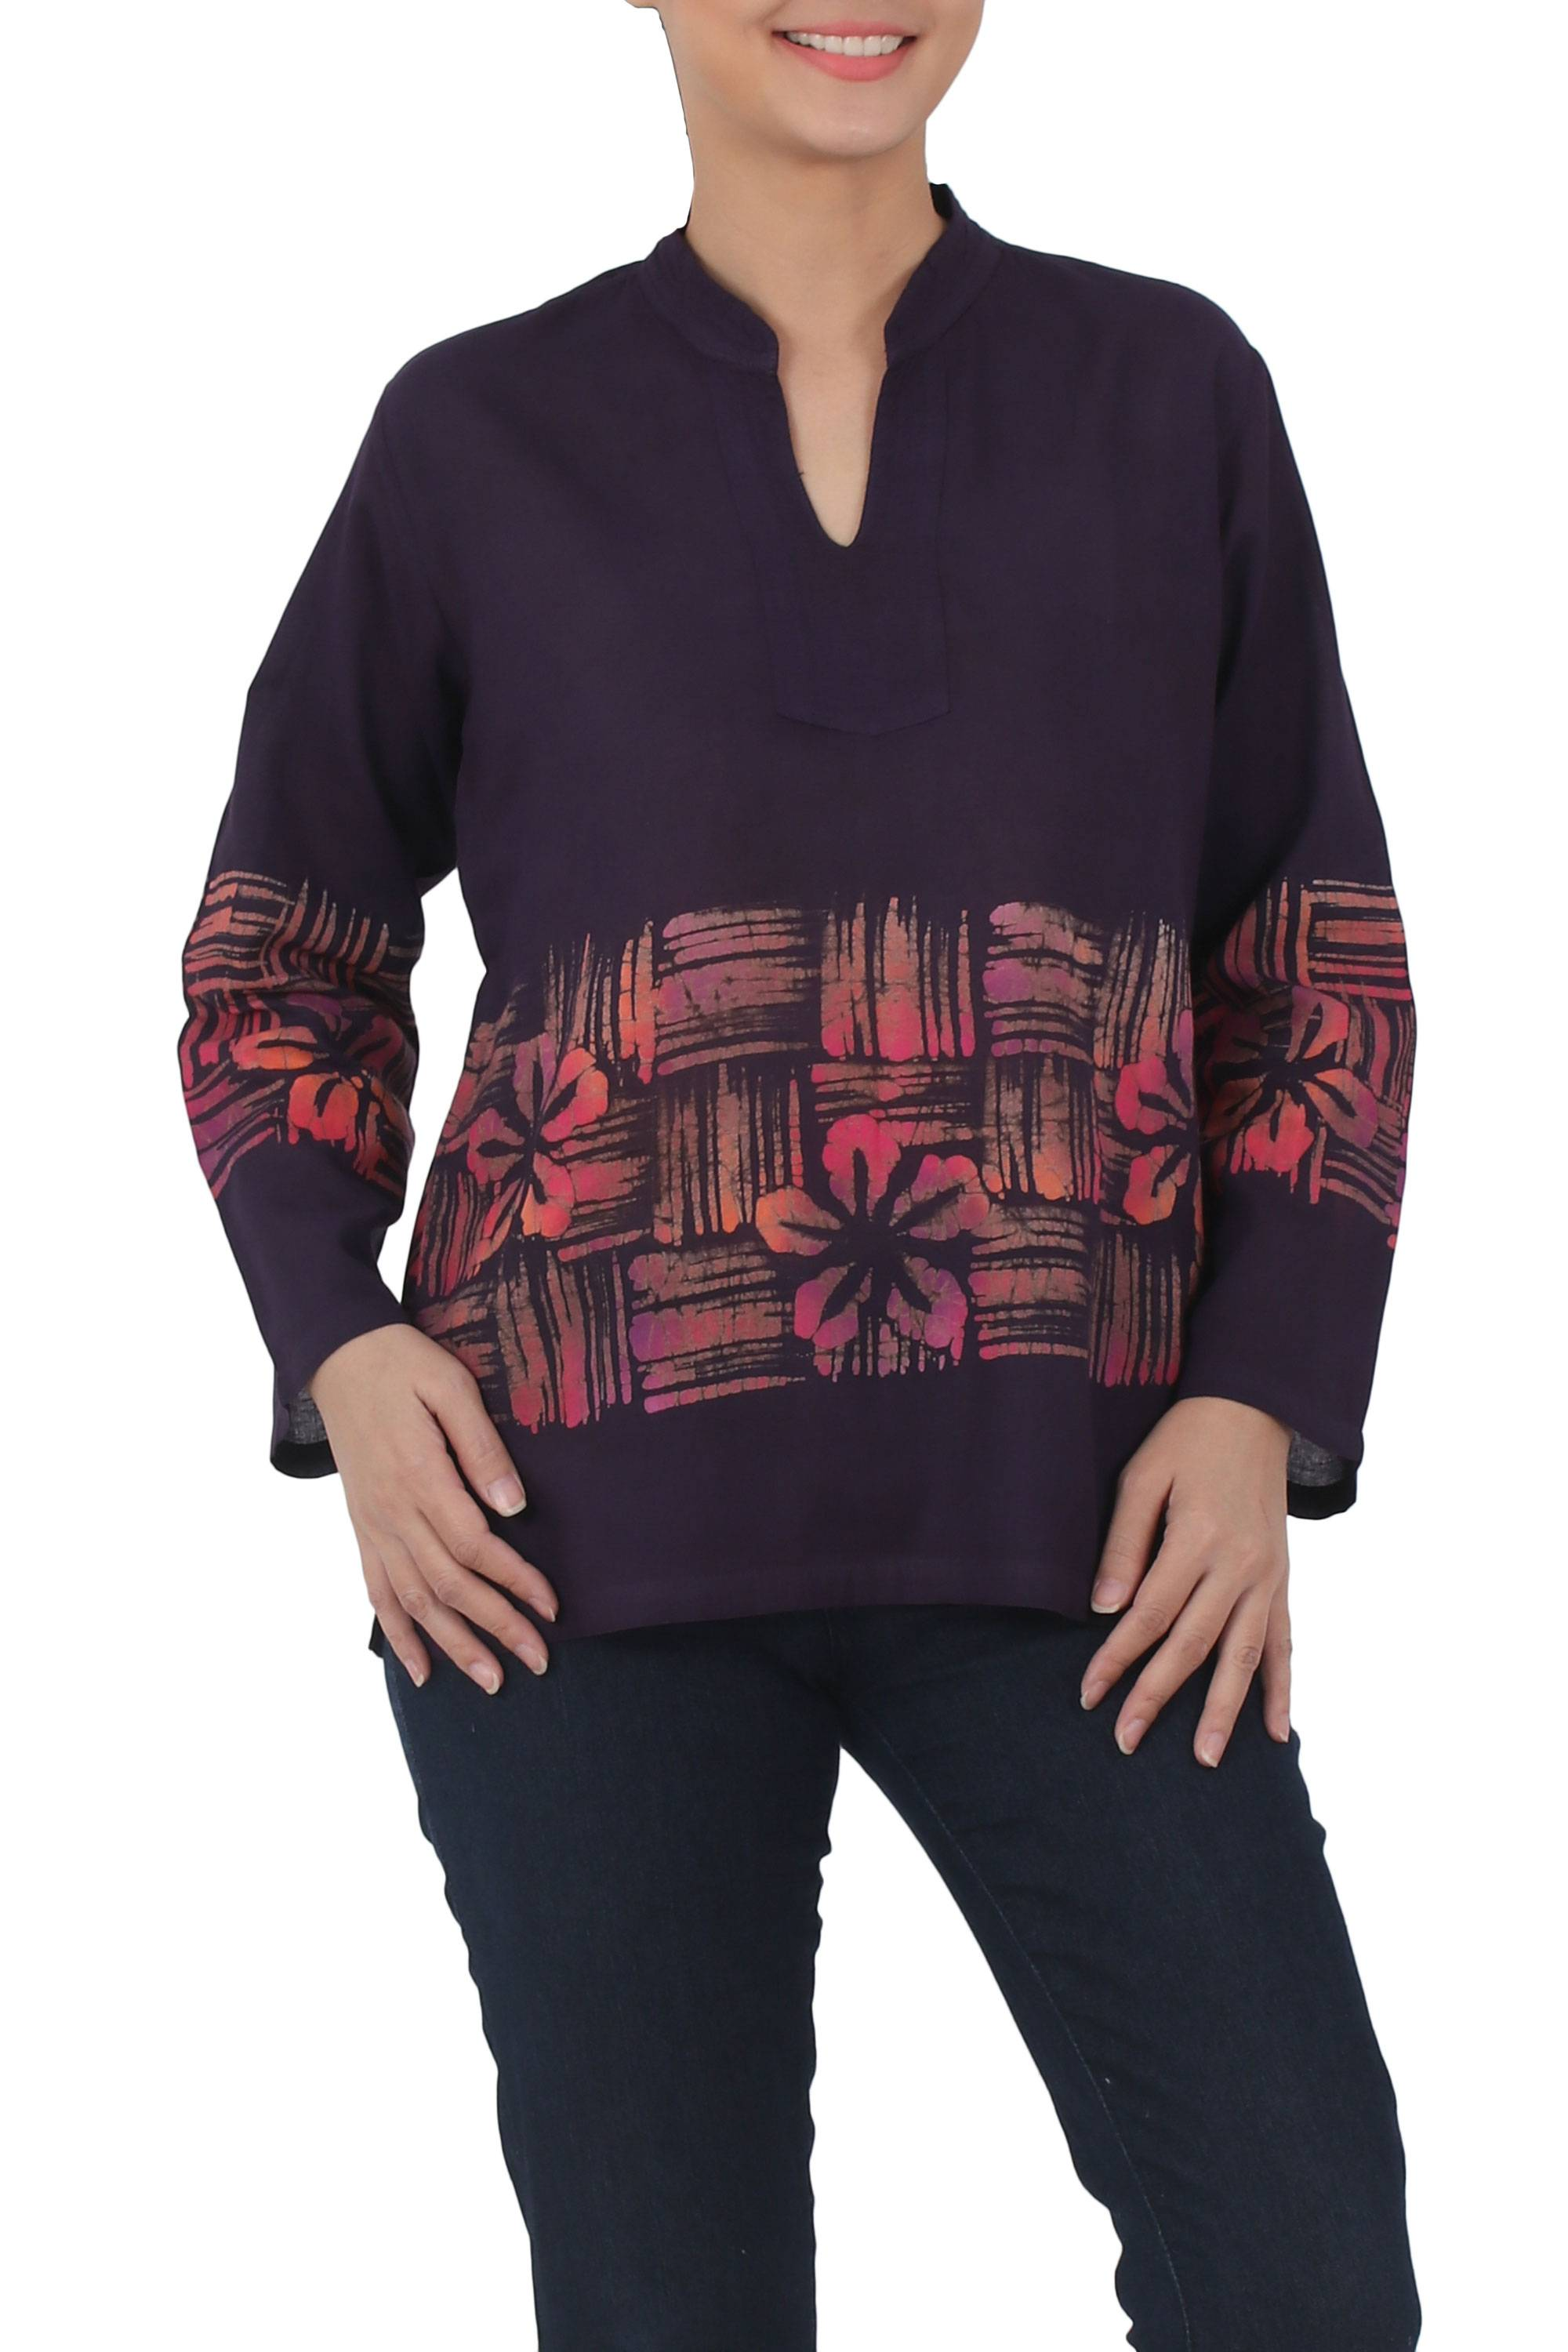 Handmade thai long sleeved cotton blouse with batik pattern handmade thai long sleeved cotton blouse with batik pattern island evenings novica biocorpaavc